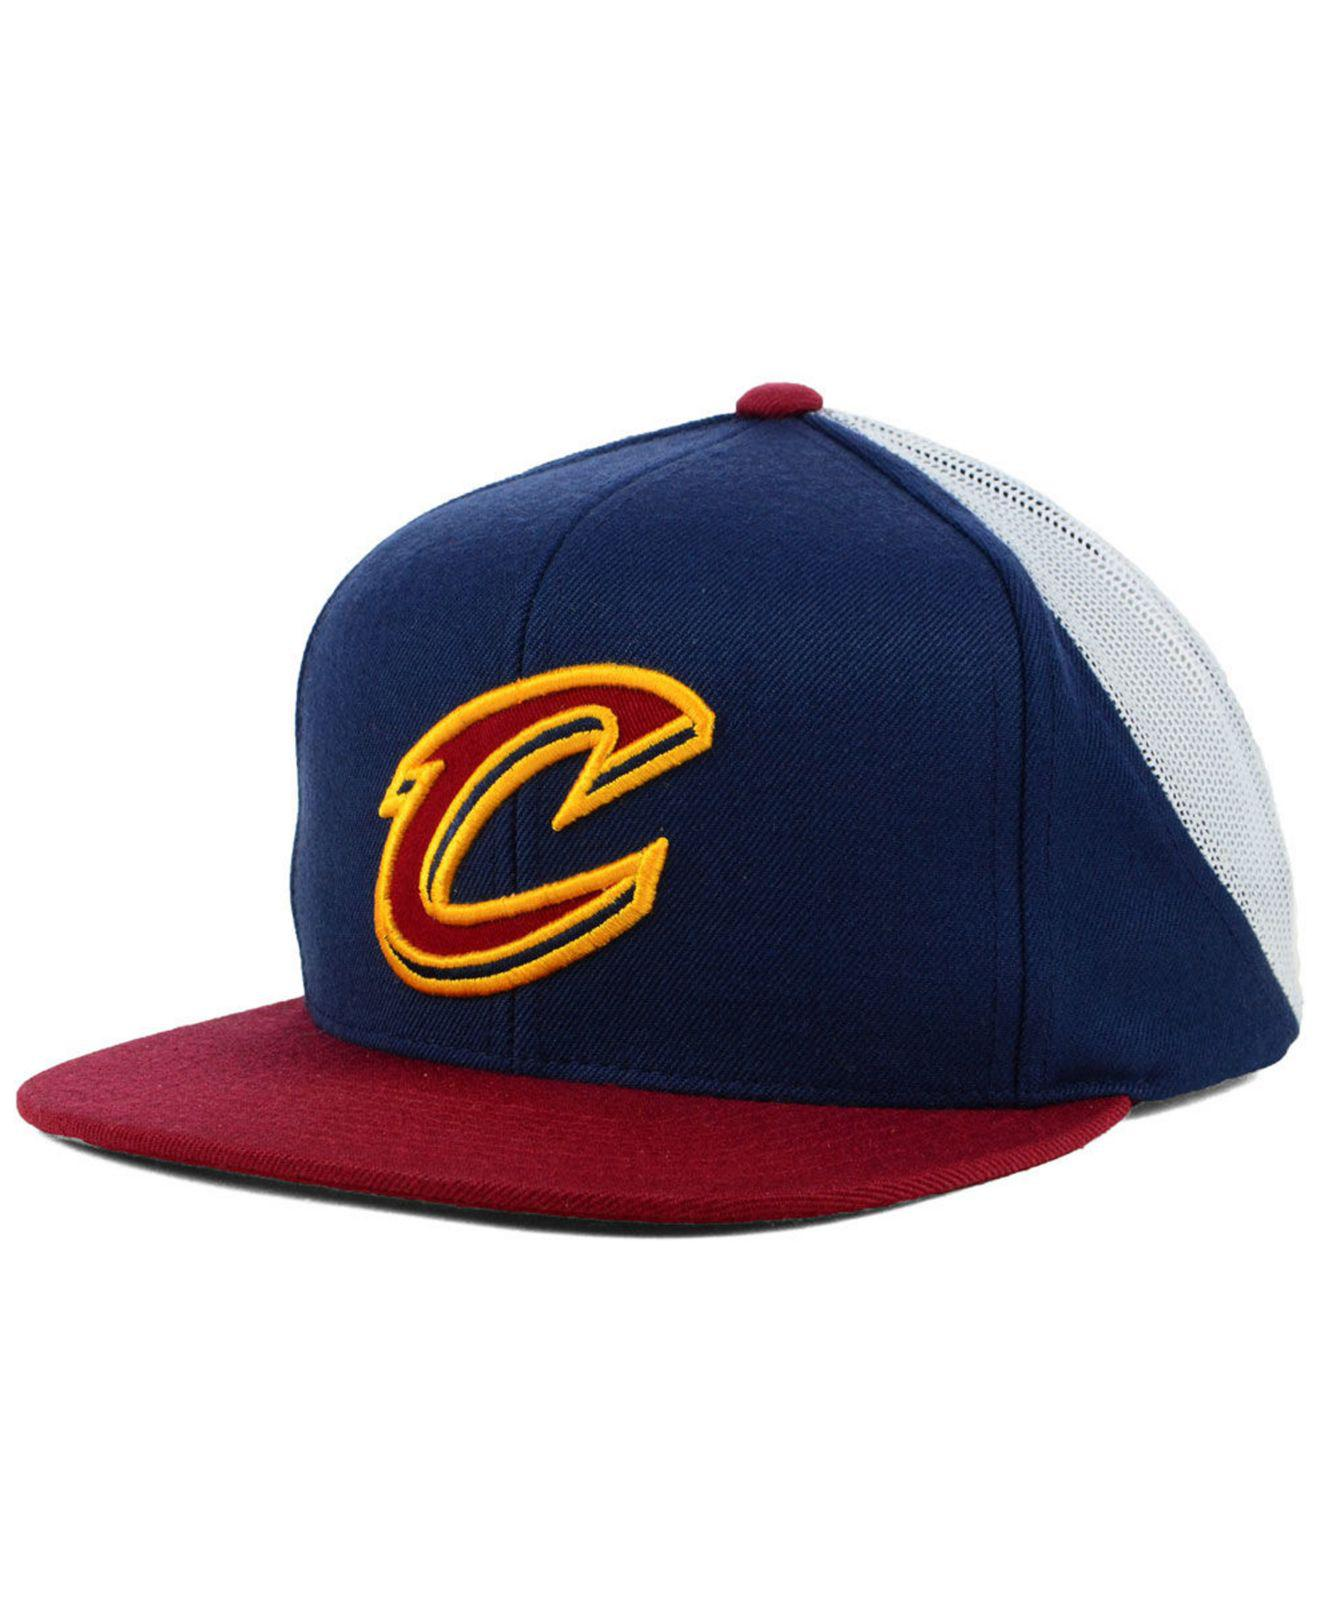 6b70960d004 Lyst - Mitchell   Ness Cleveland Cavaliers Curved Mesh Snapback in ...